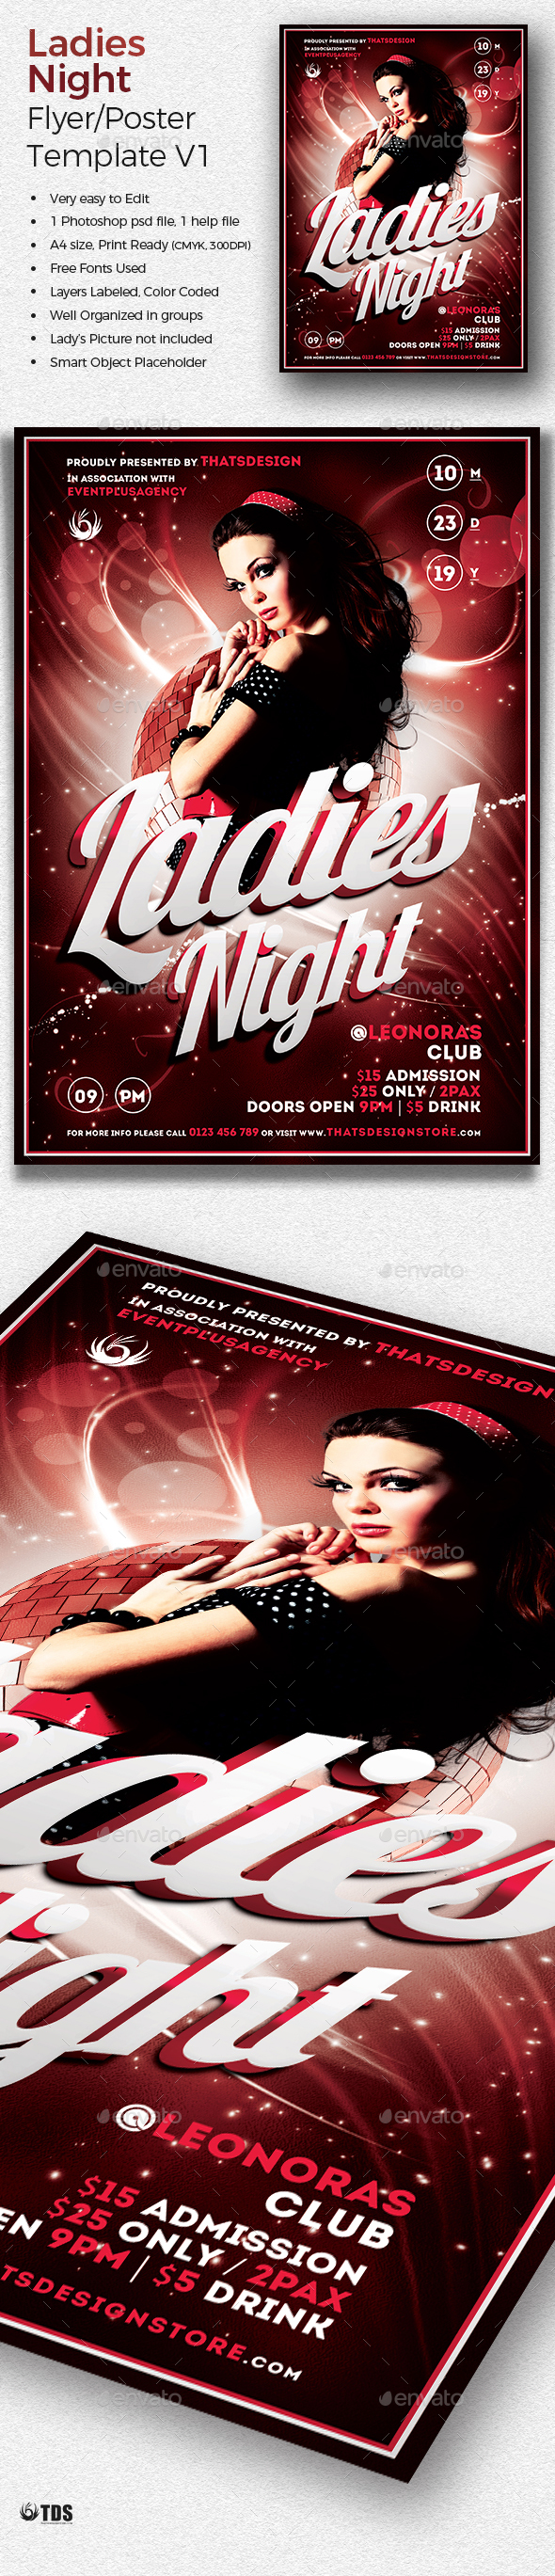 Ladies Night Flyer template V1 - Print Templates